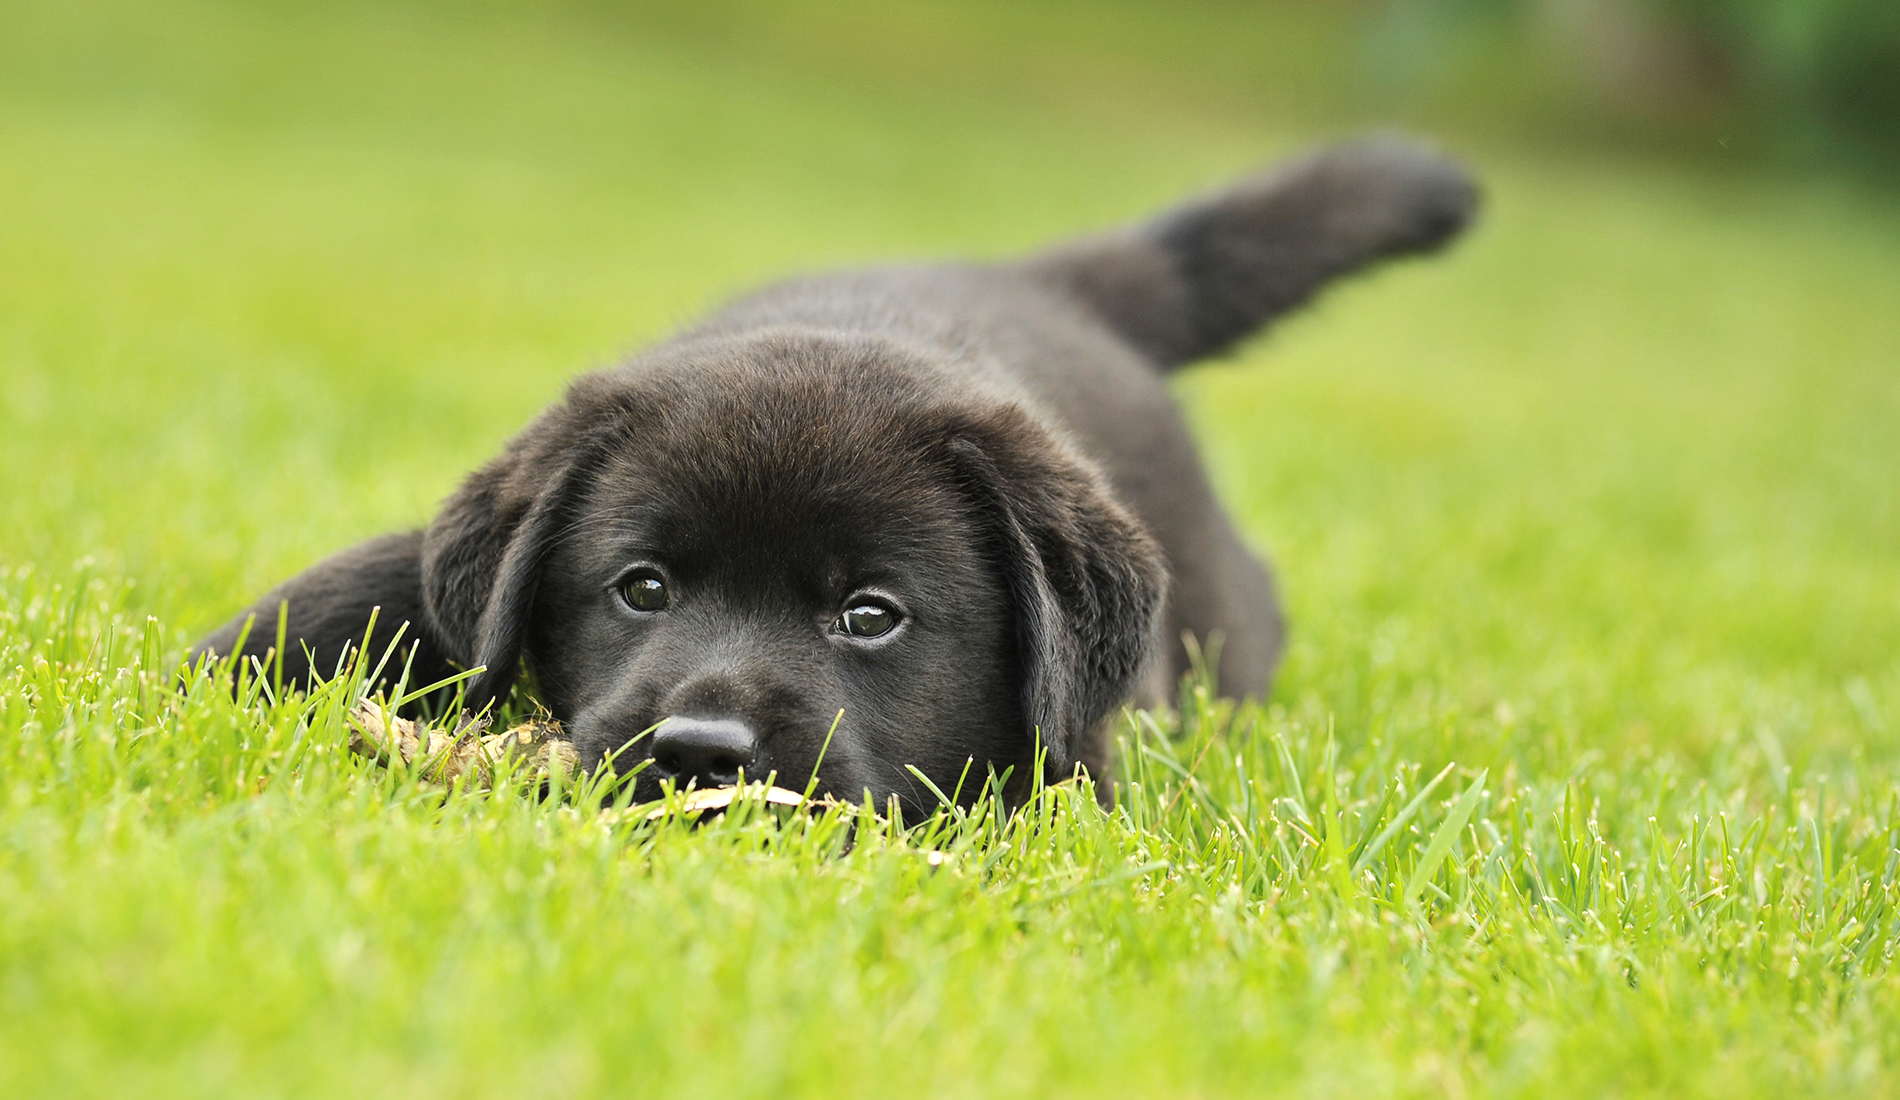 Puppy nestled in a green lawn